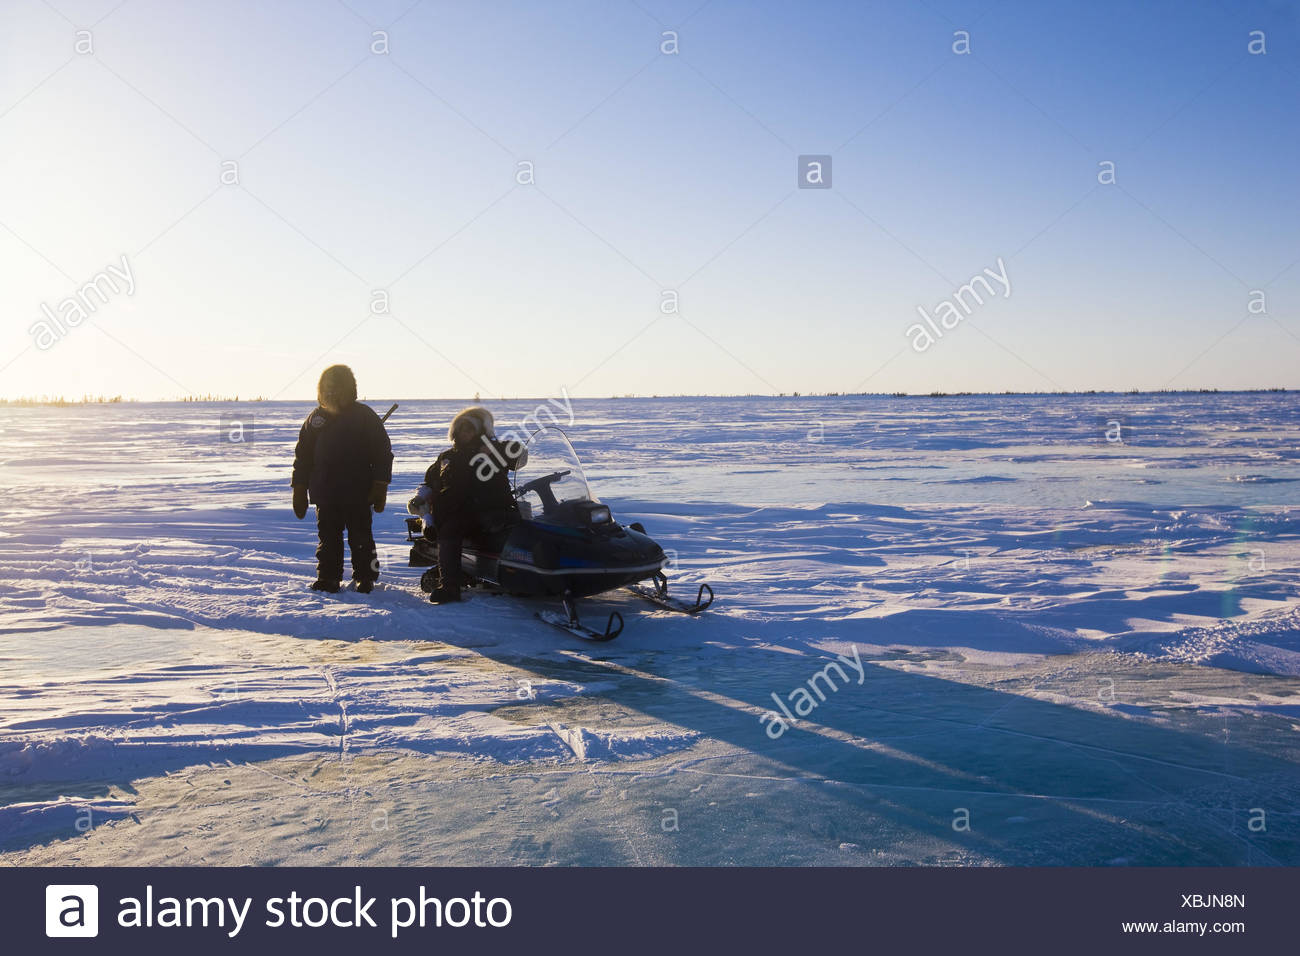 Canada, Manitoba, snow surface, men, two, snowmobile, - Stock Image